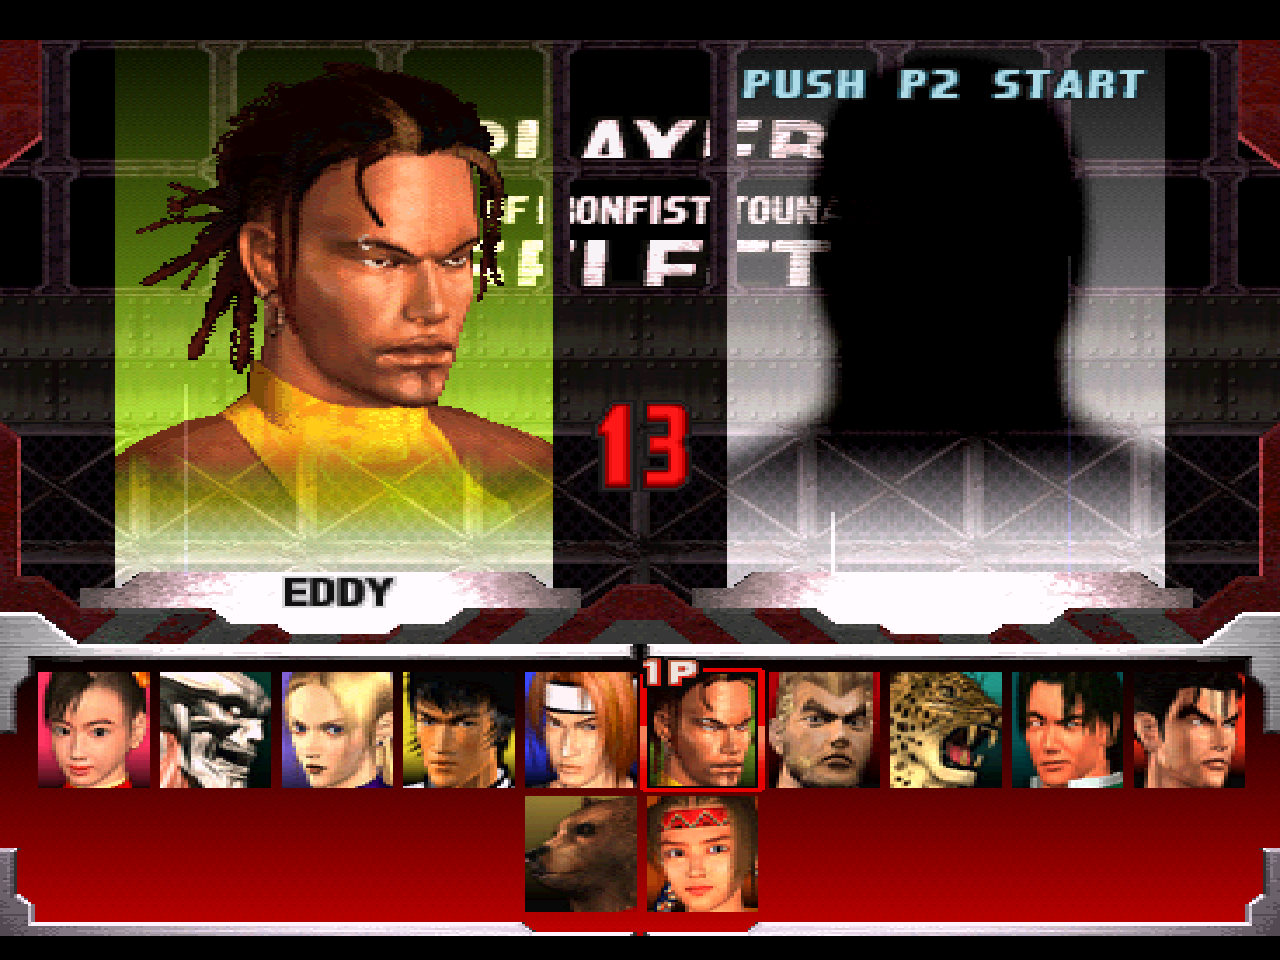 https://s3.eu-west-3.amazonaws.com/games.anthony-dessalles.com/Tekken 3 PS1 2020 - Screenshots/Tekken 3-201204-181753.png